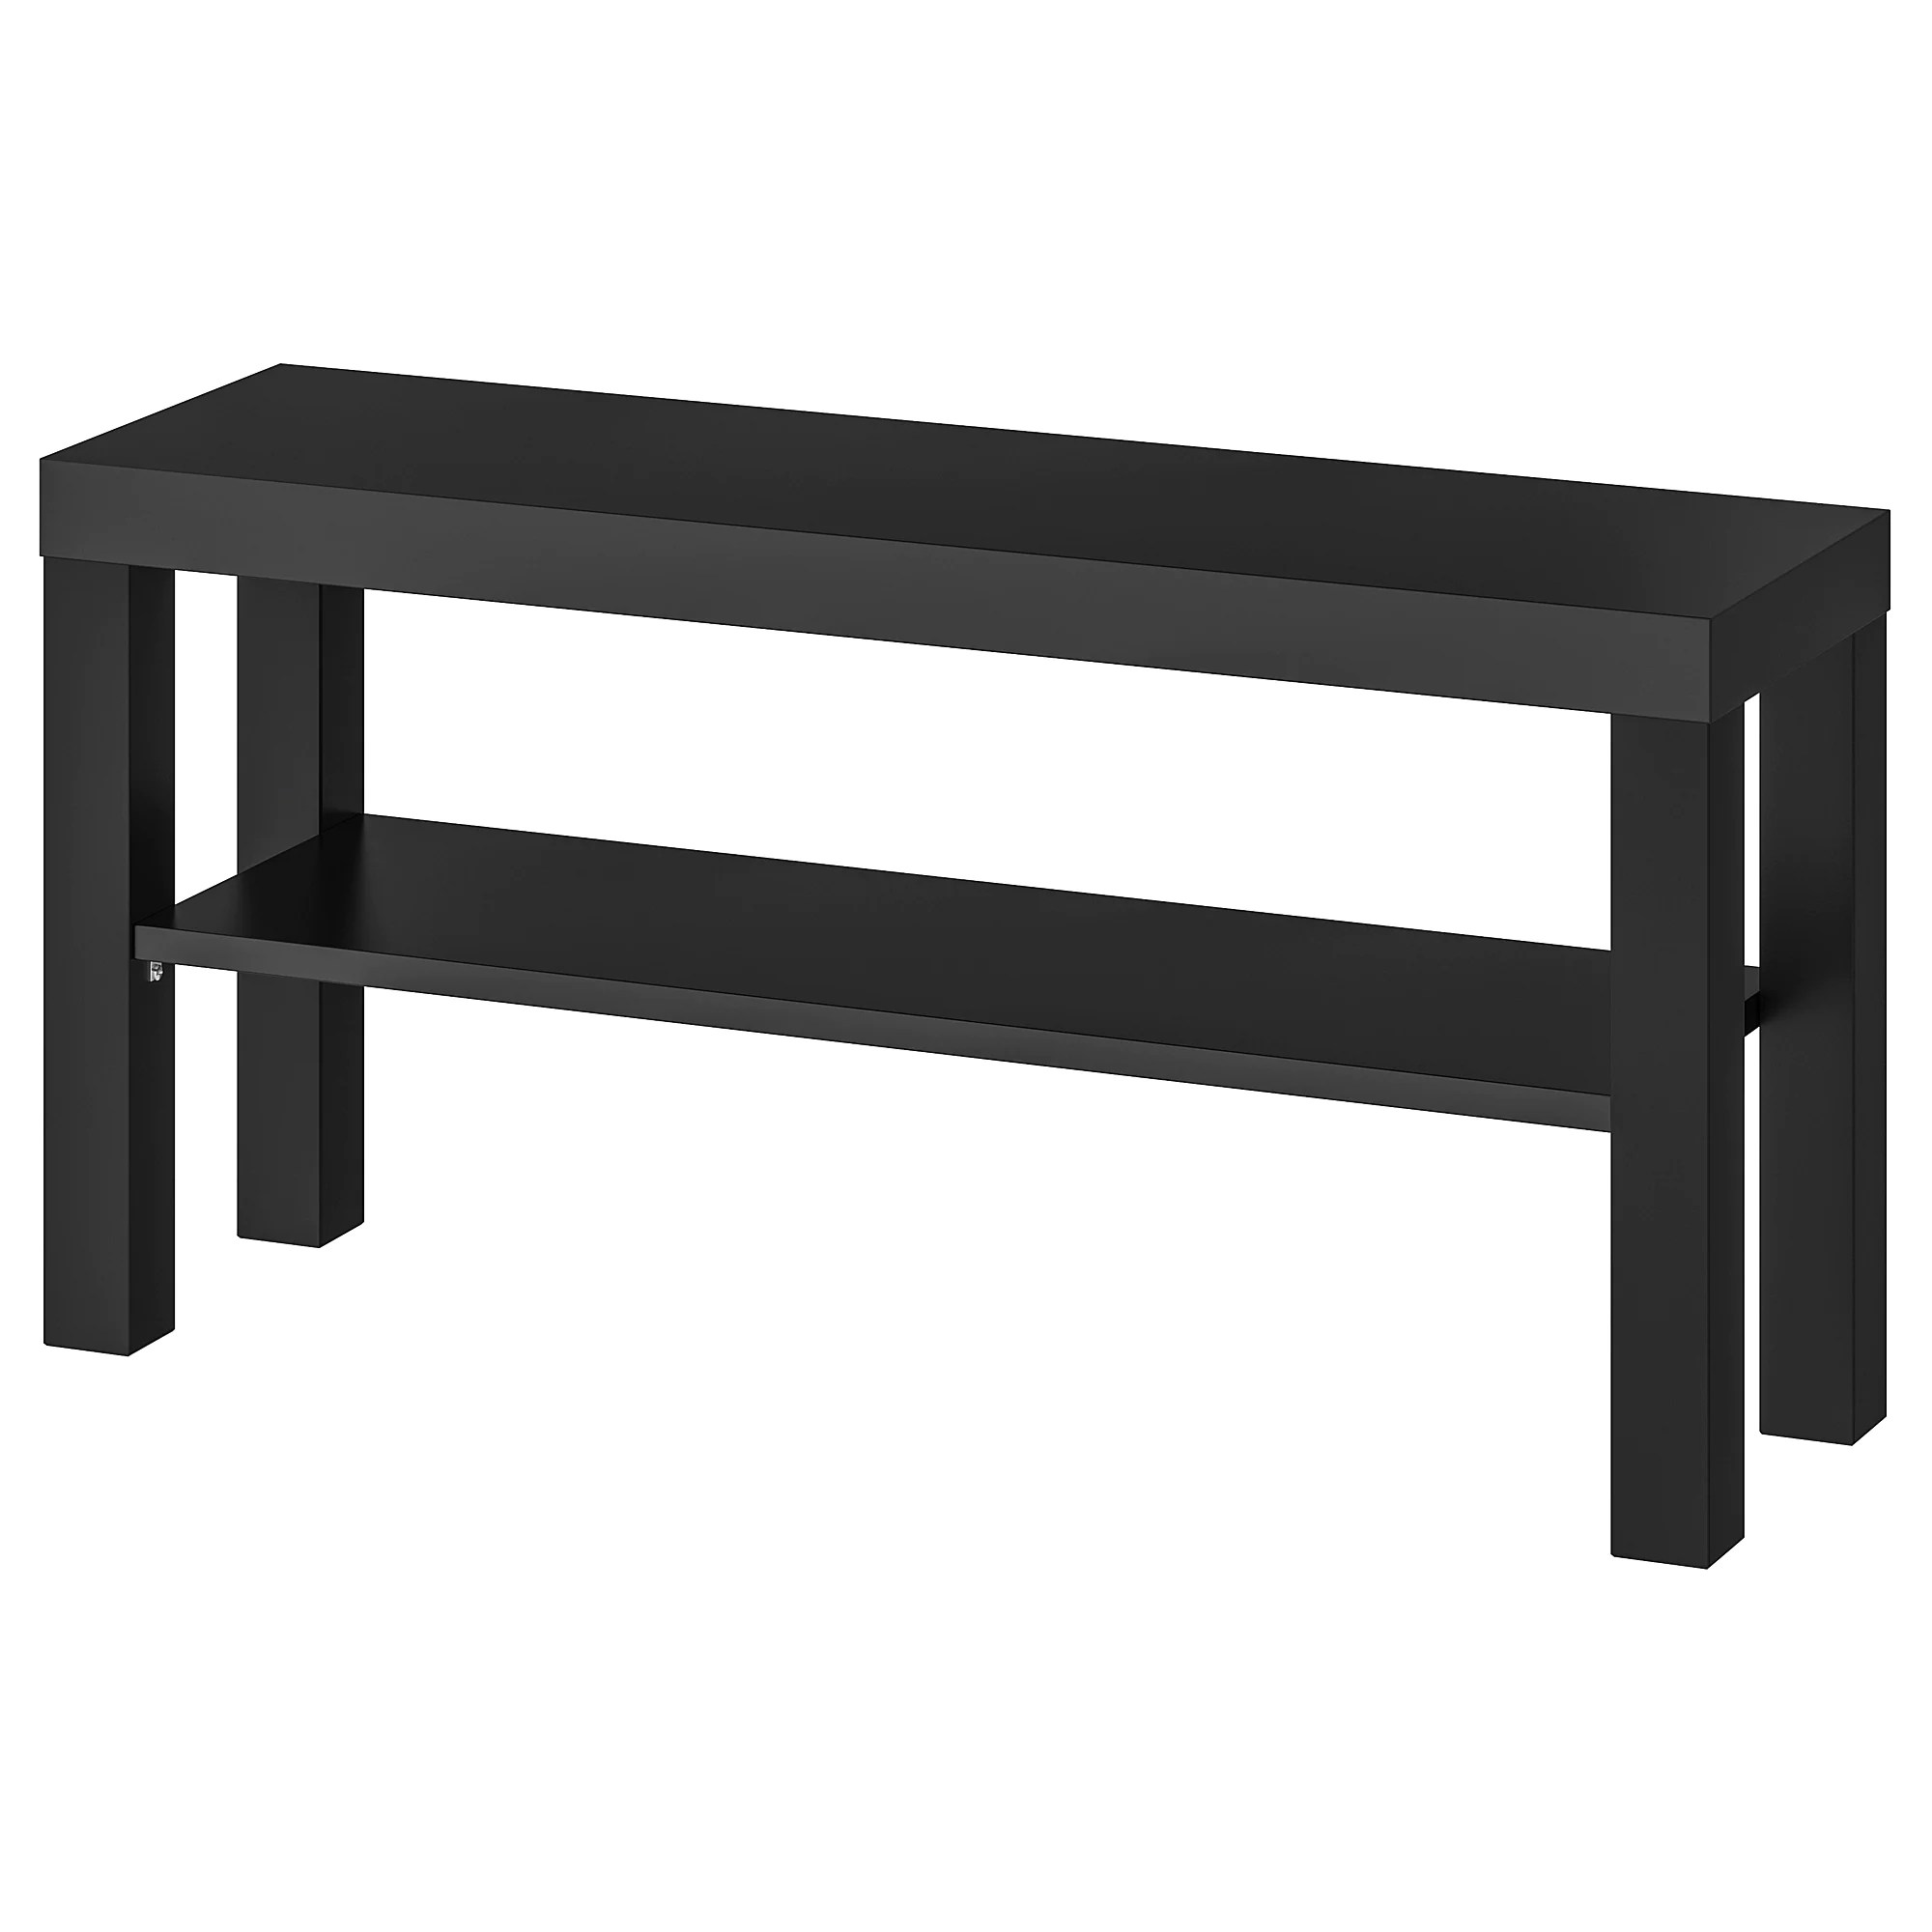 Magasin Ikea Henin Beaumont Banc Tv Lack Noir